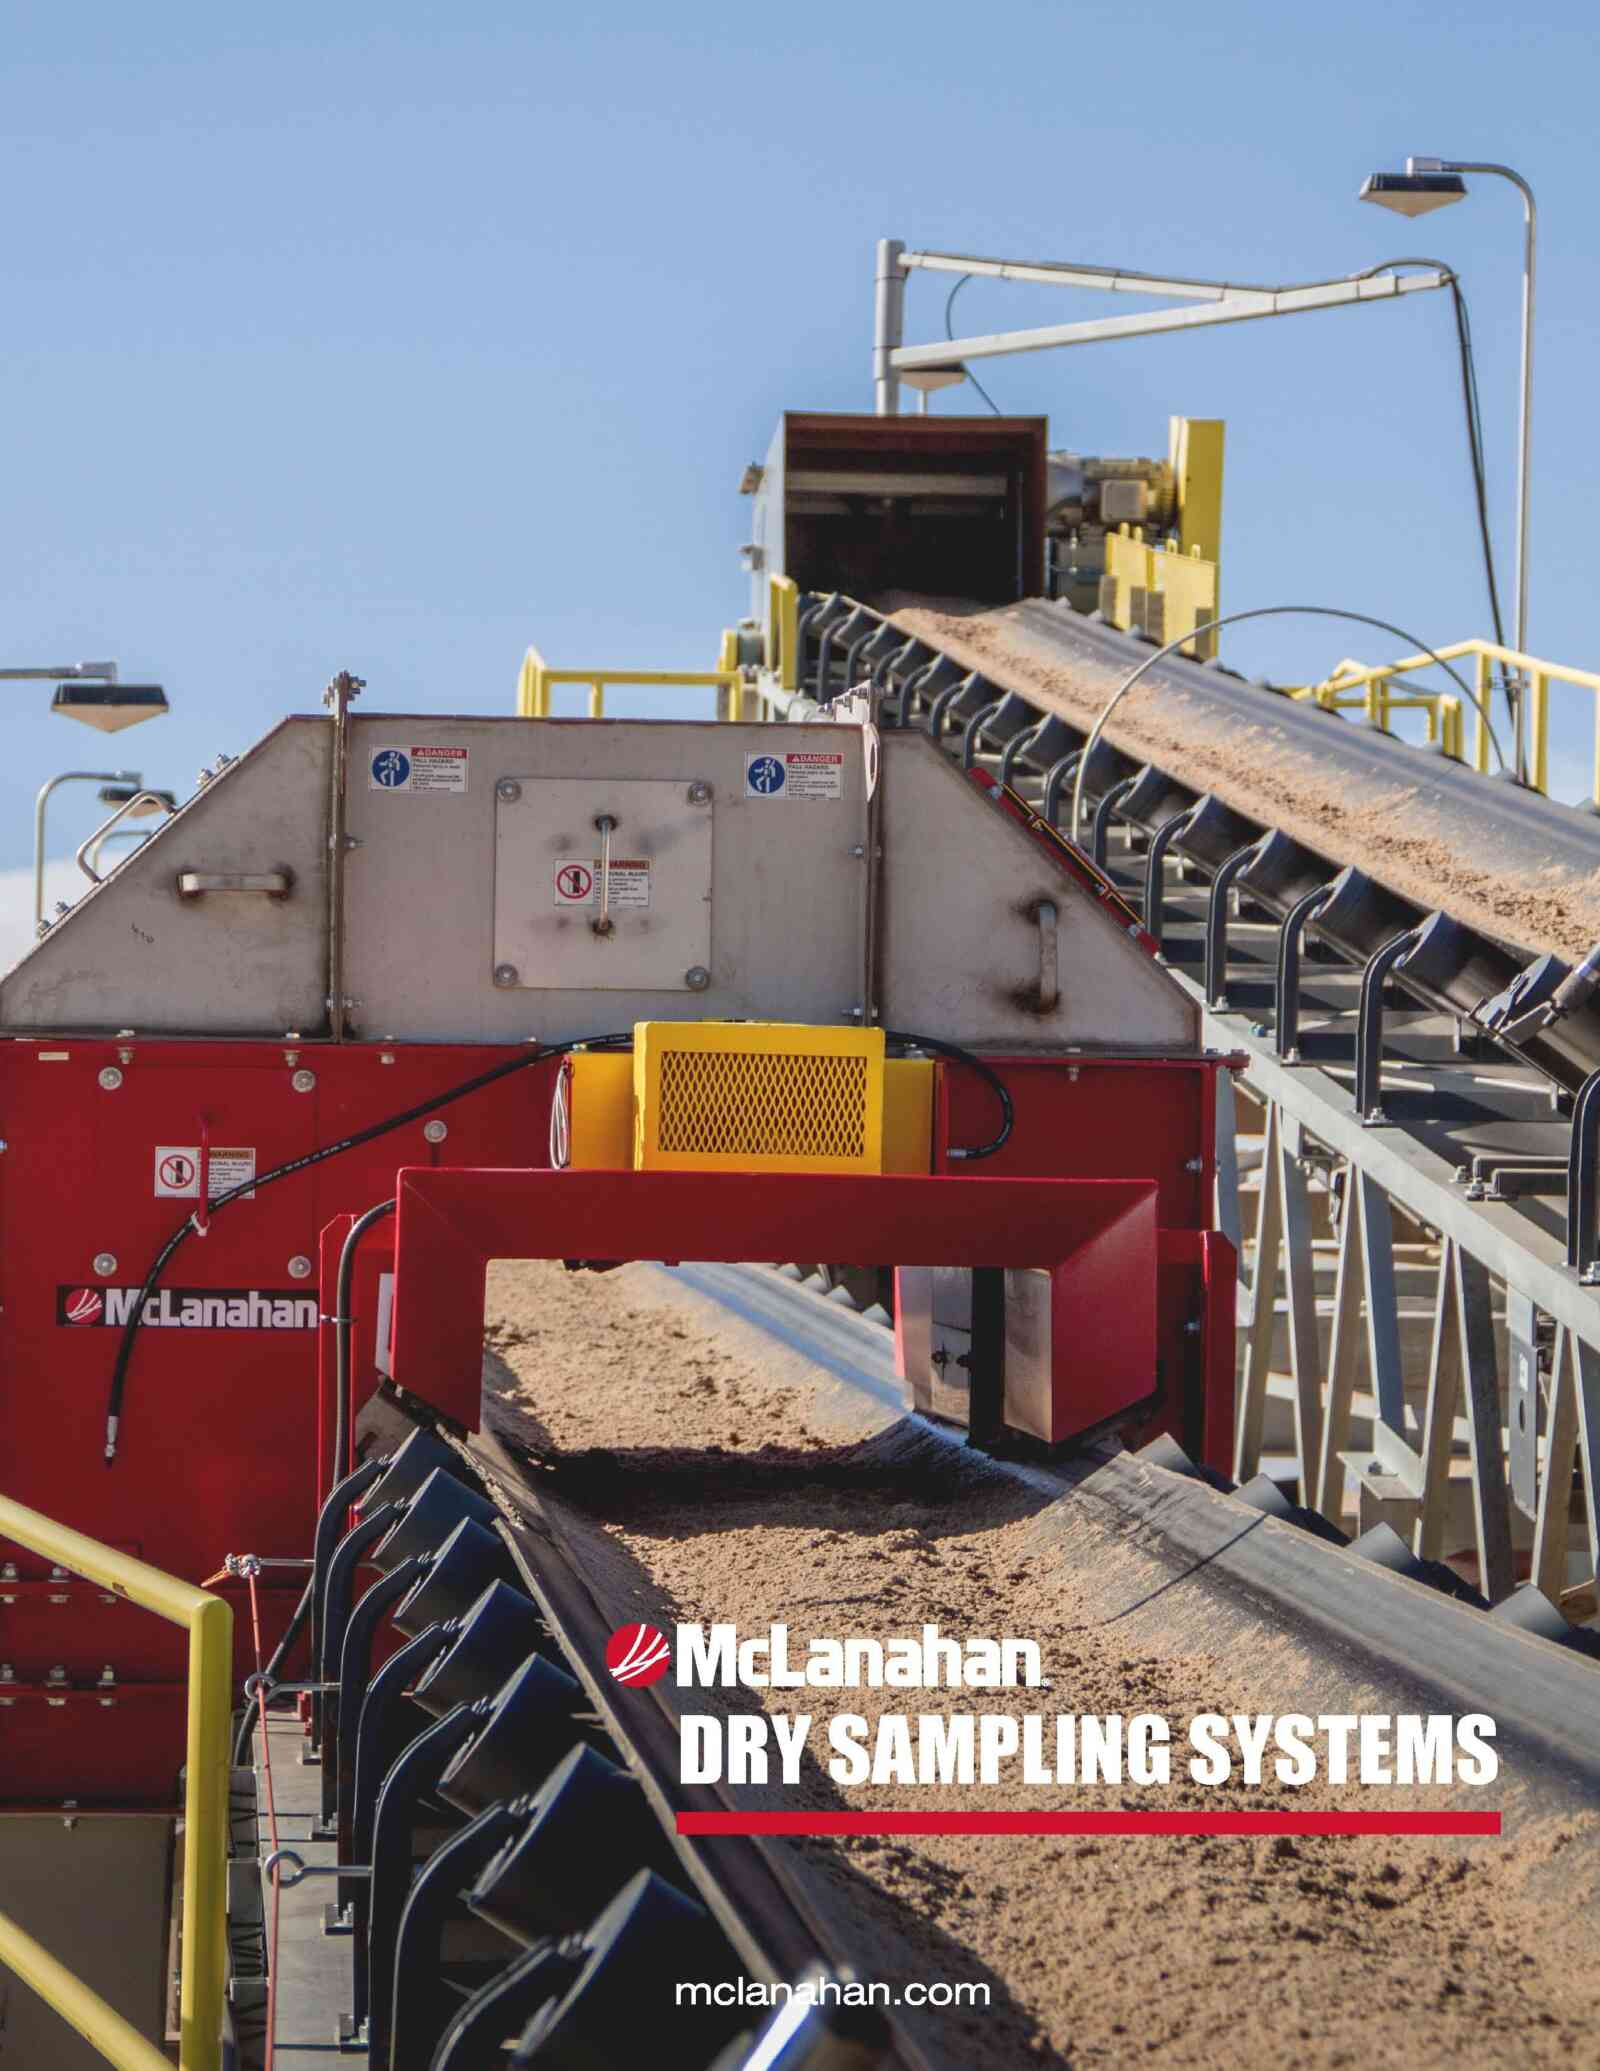 Sampling Systems Brochure Image Page 1